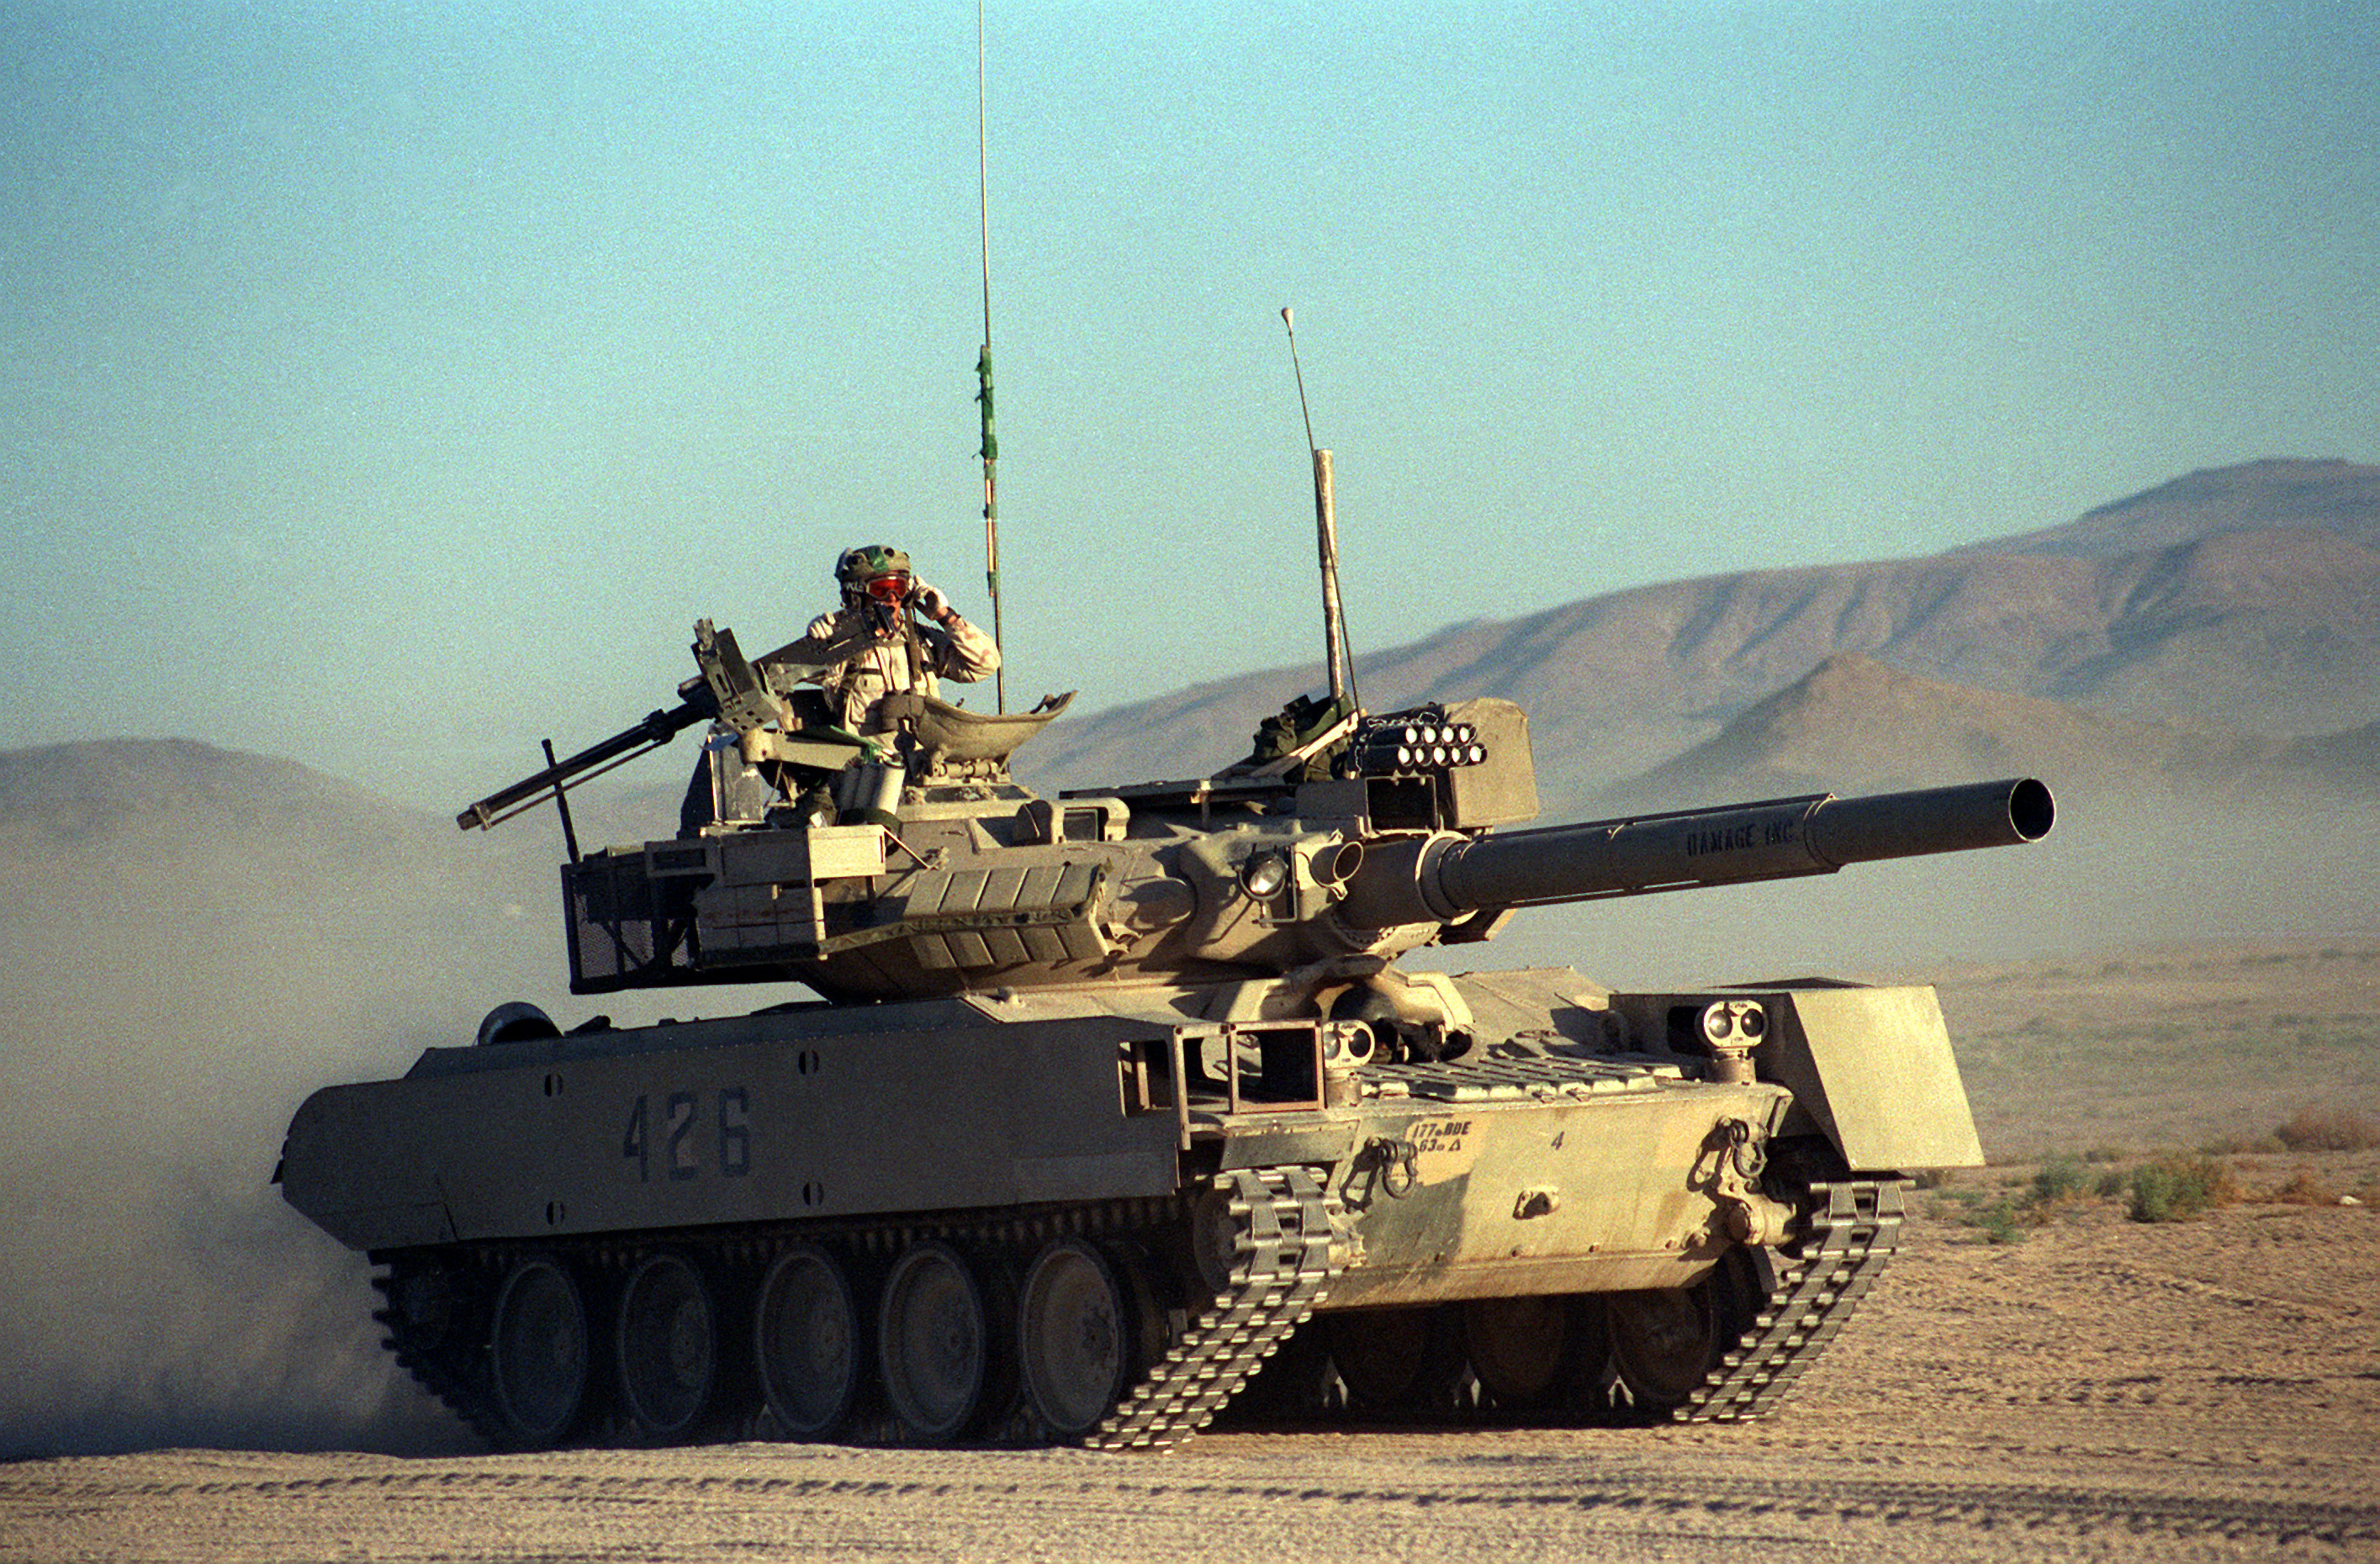 http://upload.wikimedia.org/wikipedia/commons/7/72/M551_Sheridan_vismod_T-80.jpg